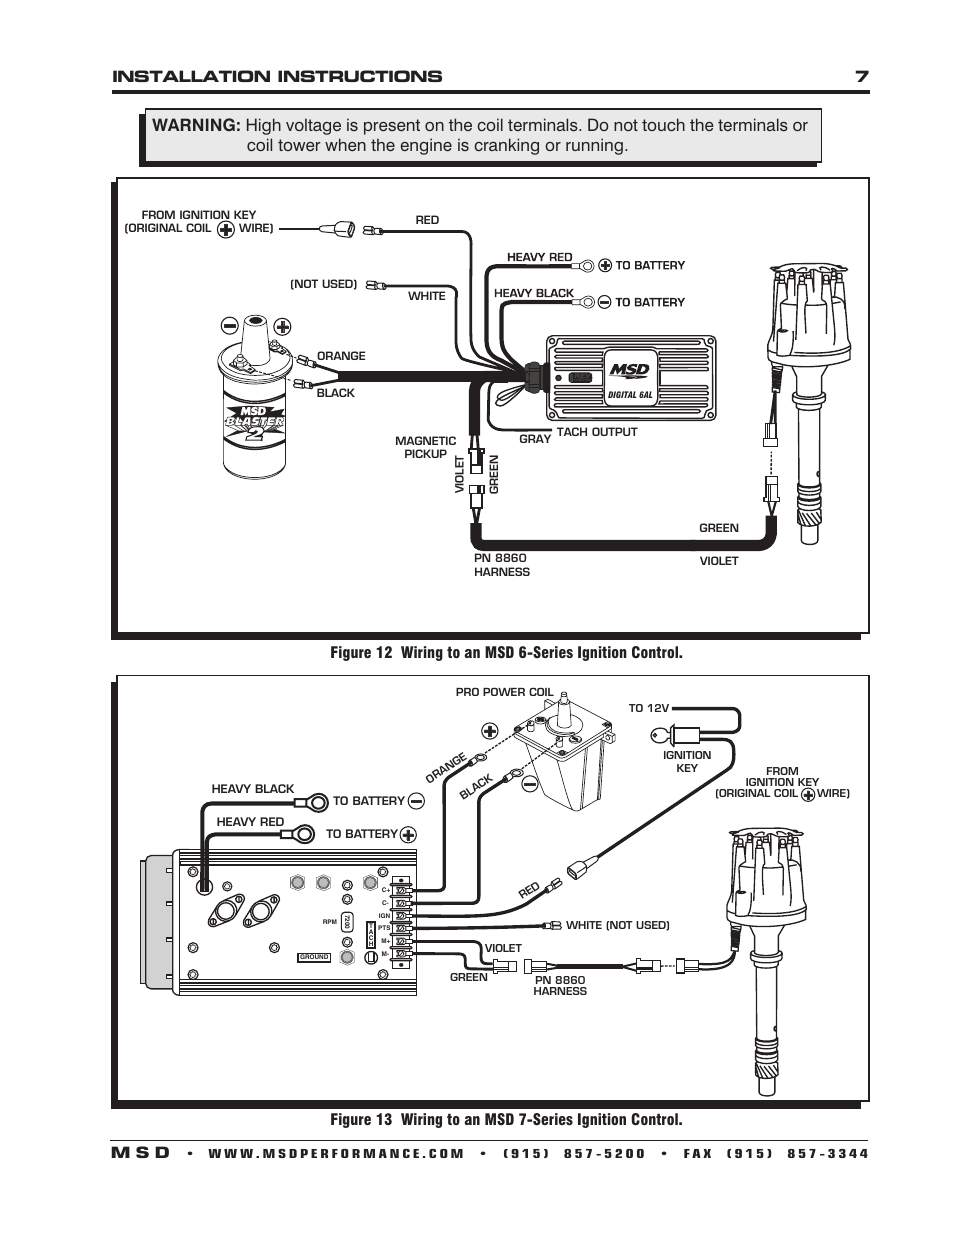 msd 6al wiring diagram for tach msd 6al wiring diagram chevy v 8 control with boost installation instructions 7 m s d | msd 85501 chevy v8 pro ...